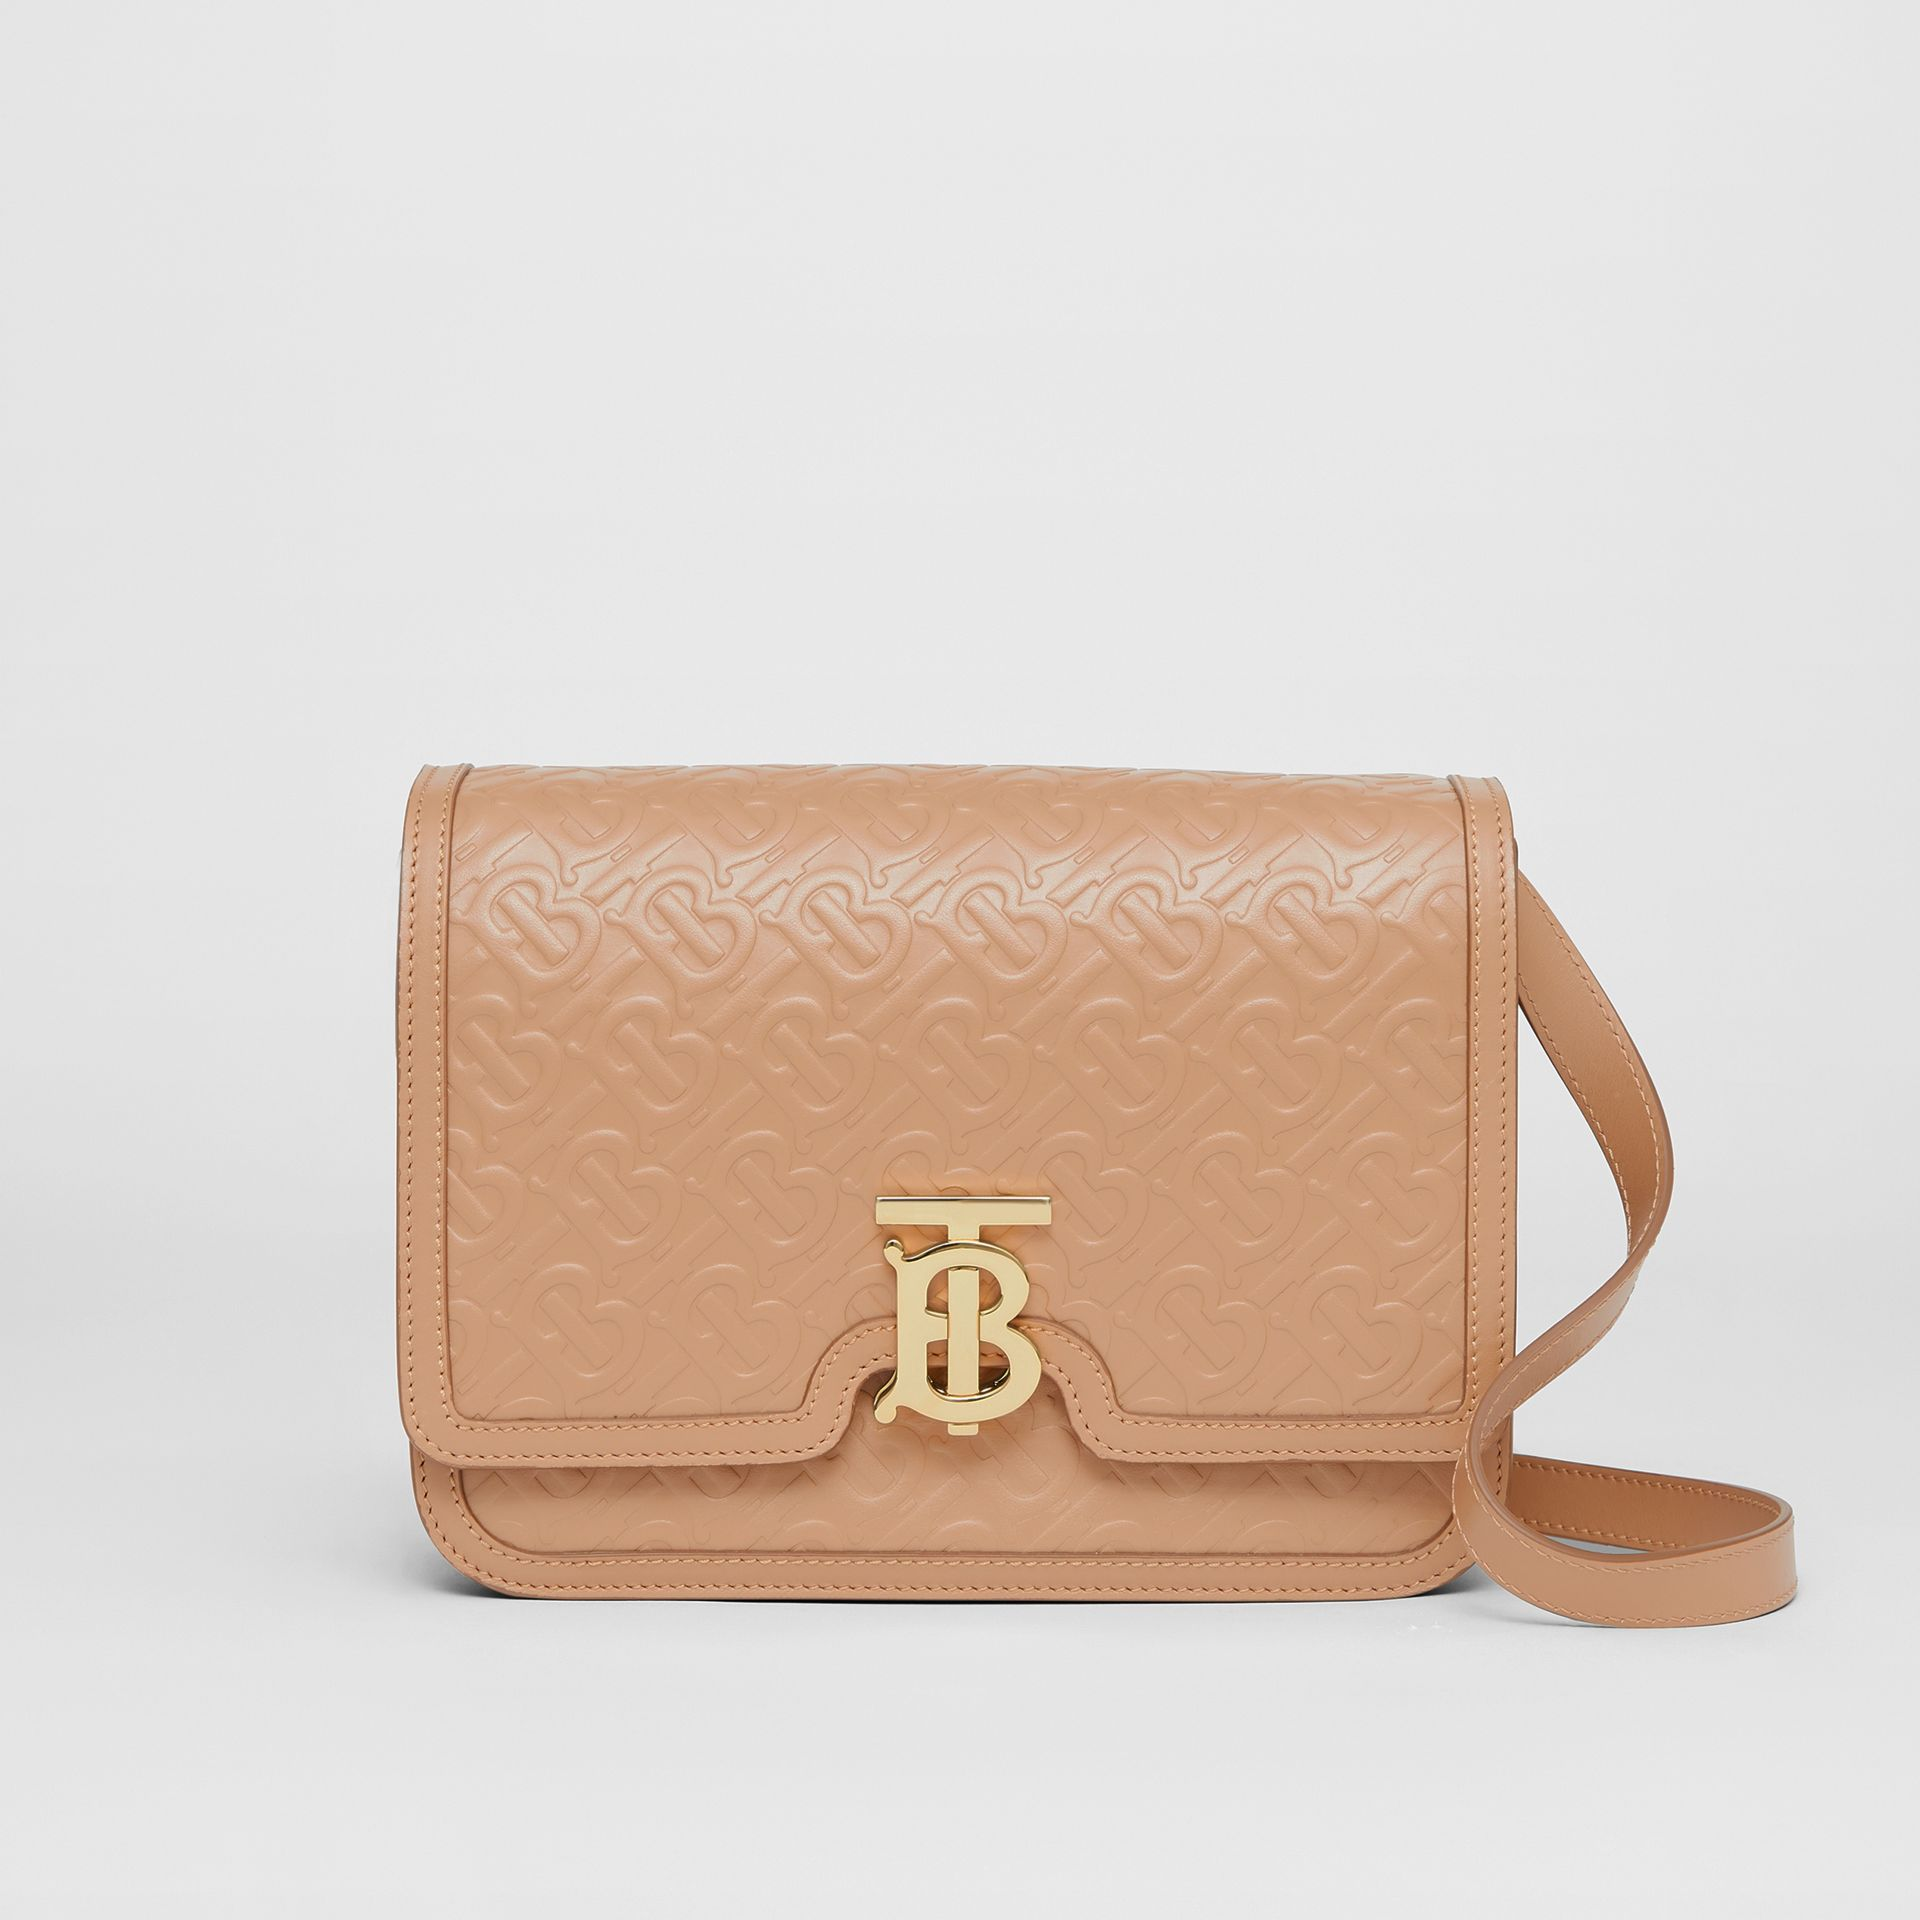 Medium Monogram Leather TB Bag in Light Camel - Women | Burberry - gallery image 0